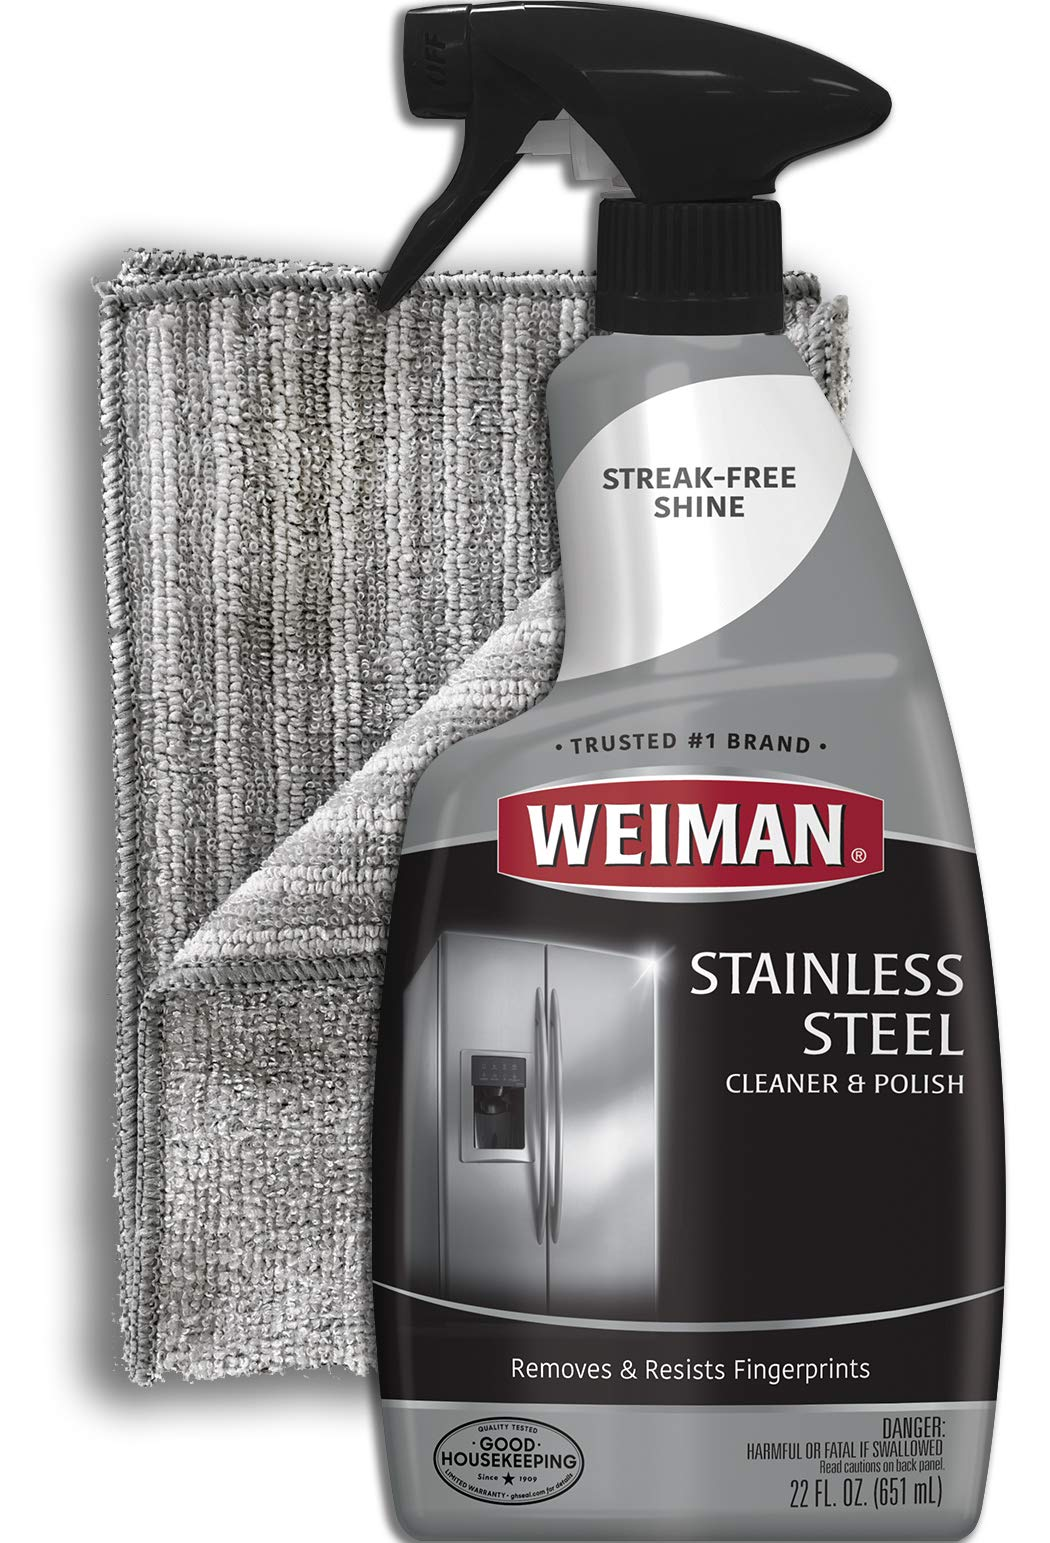 Weiman Stainless Steel Cleaner And Polish 22 Ounces